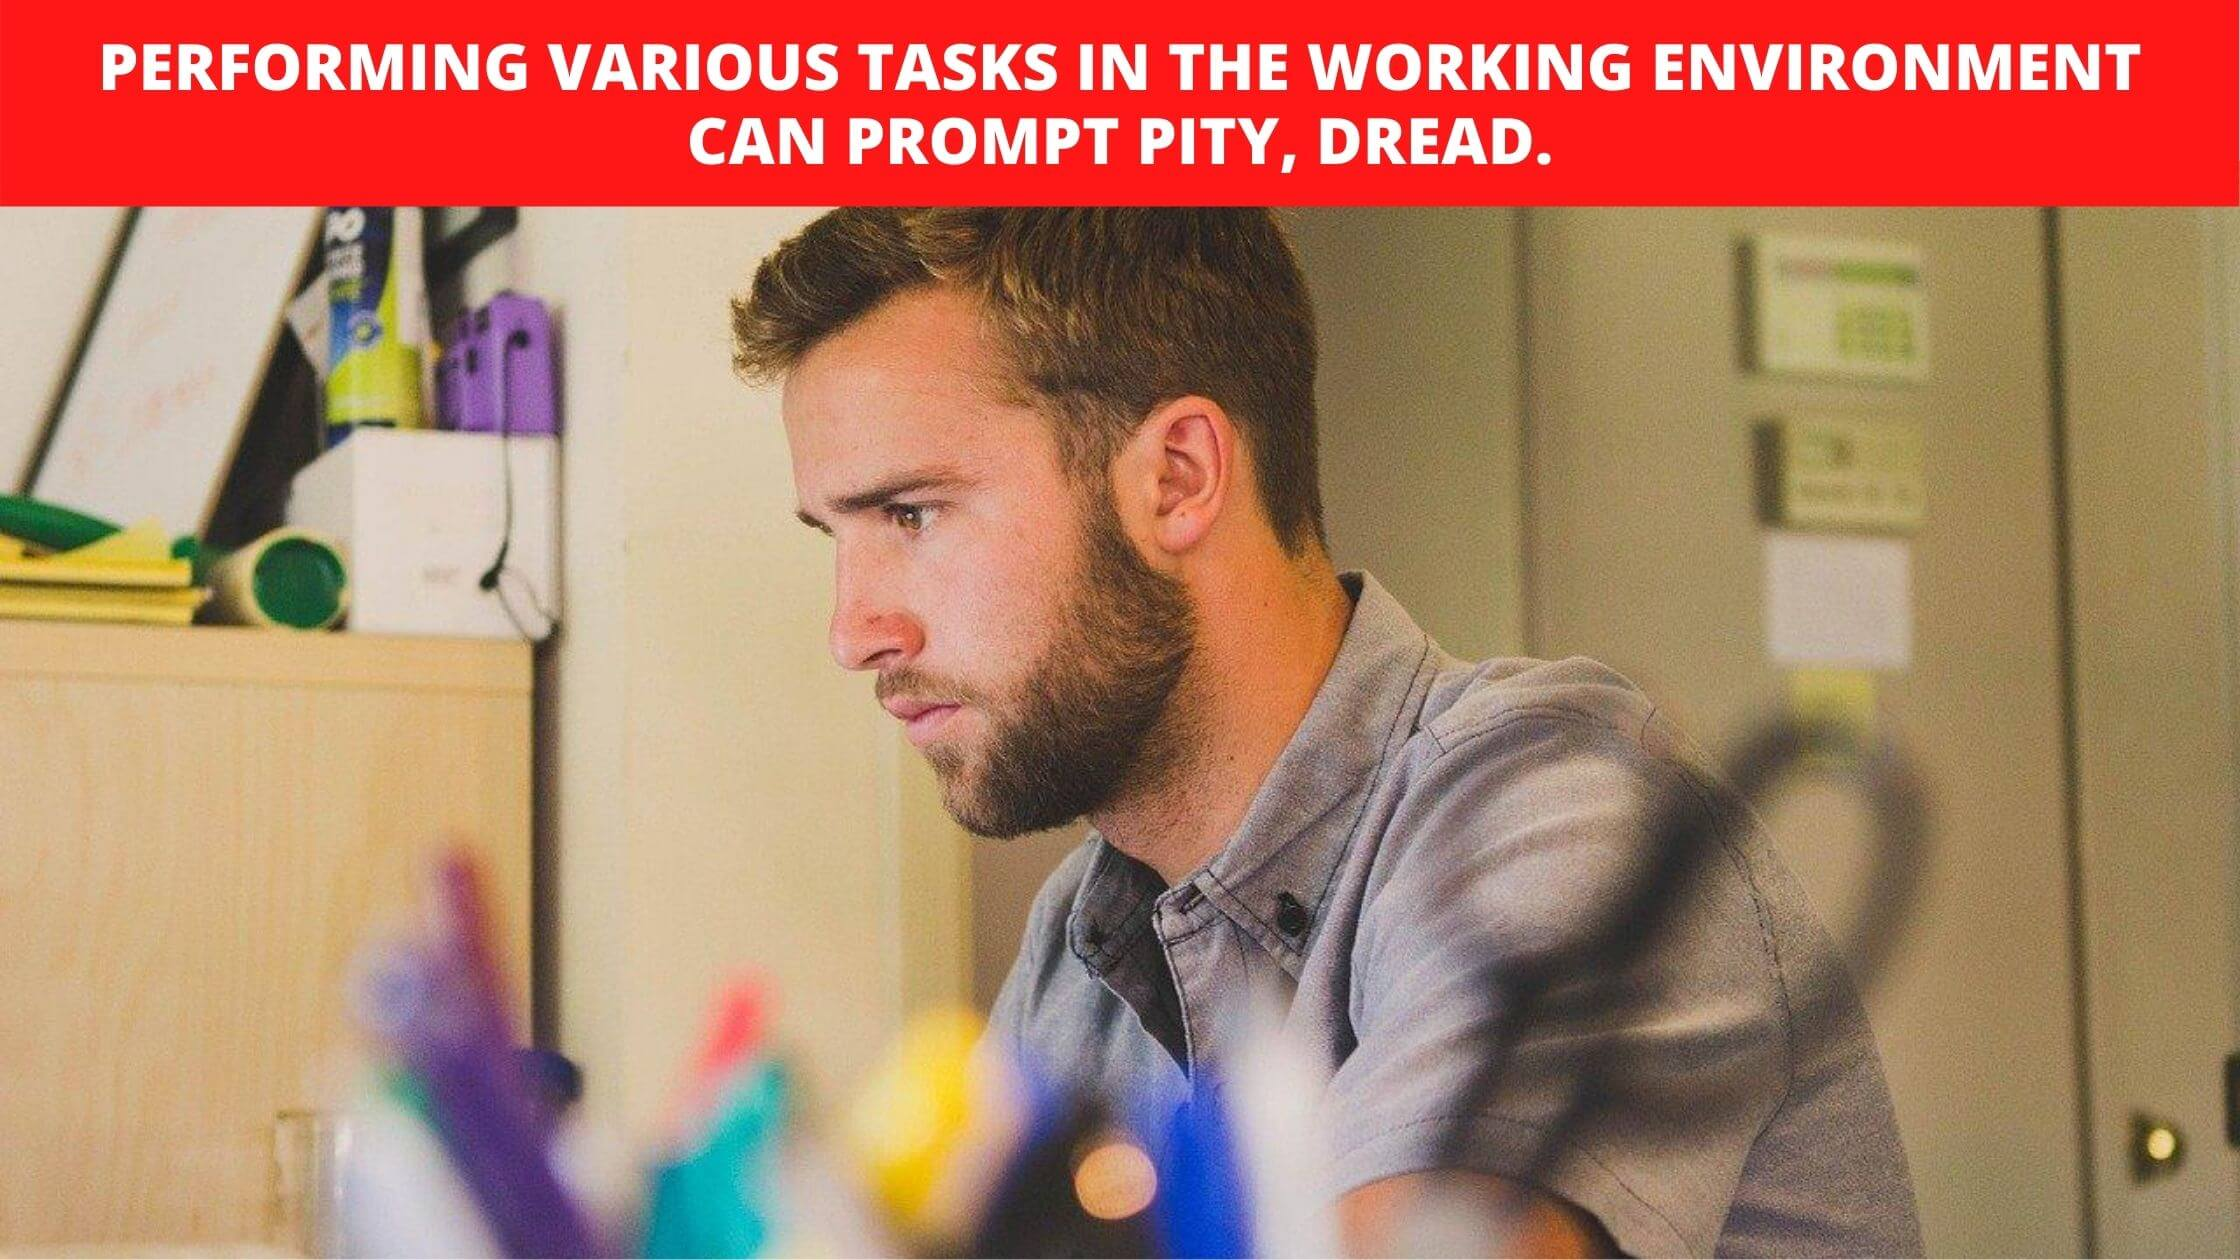 Performing various tasks in the working environment can prompt pity, dread